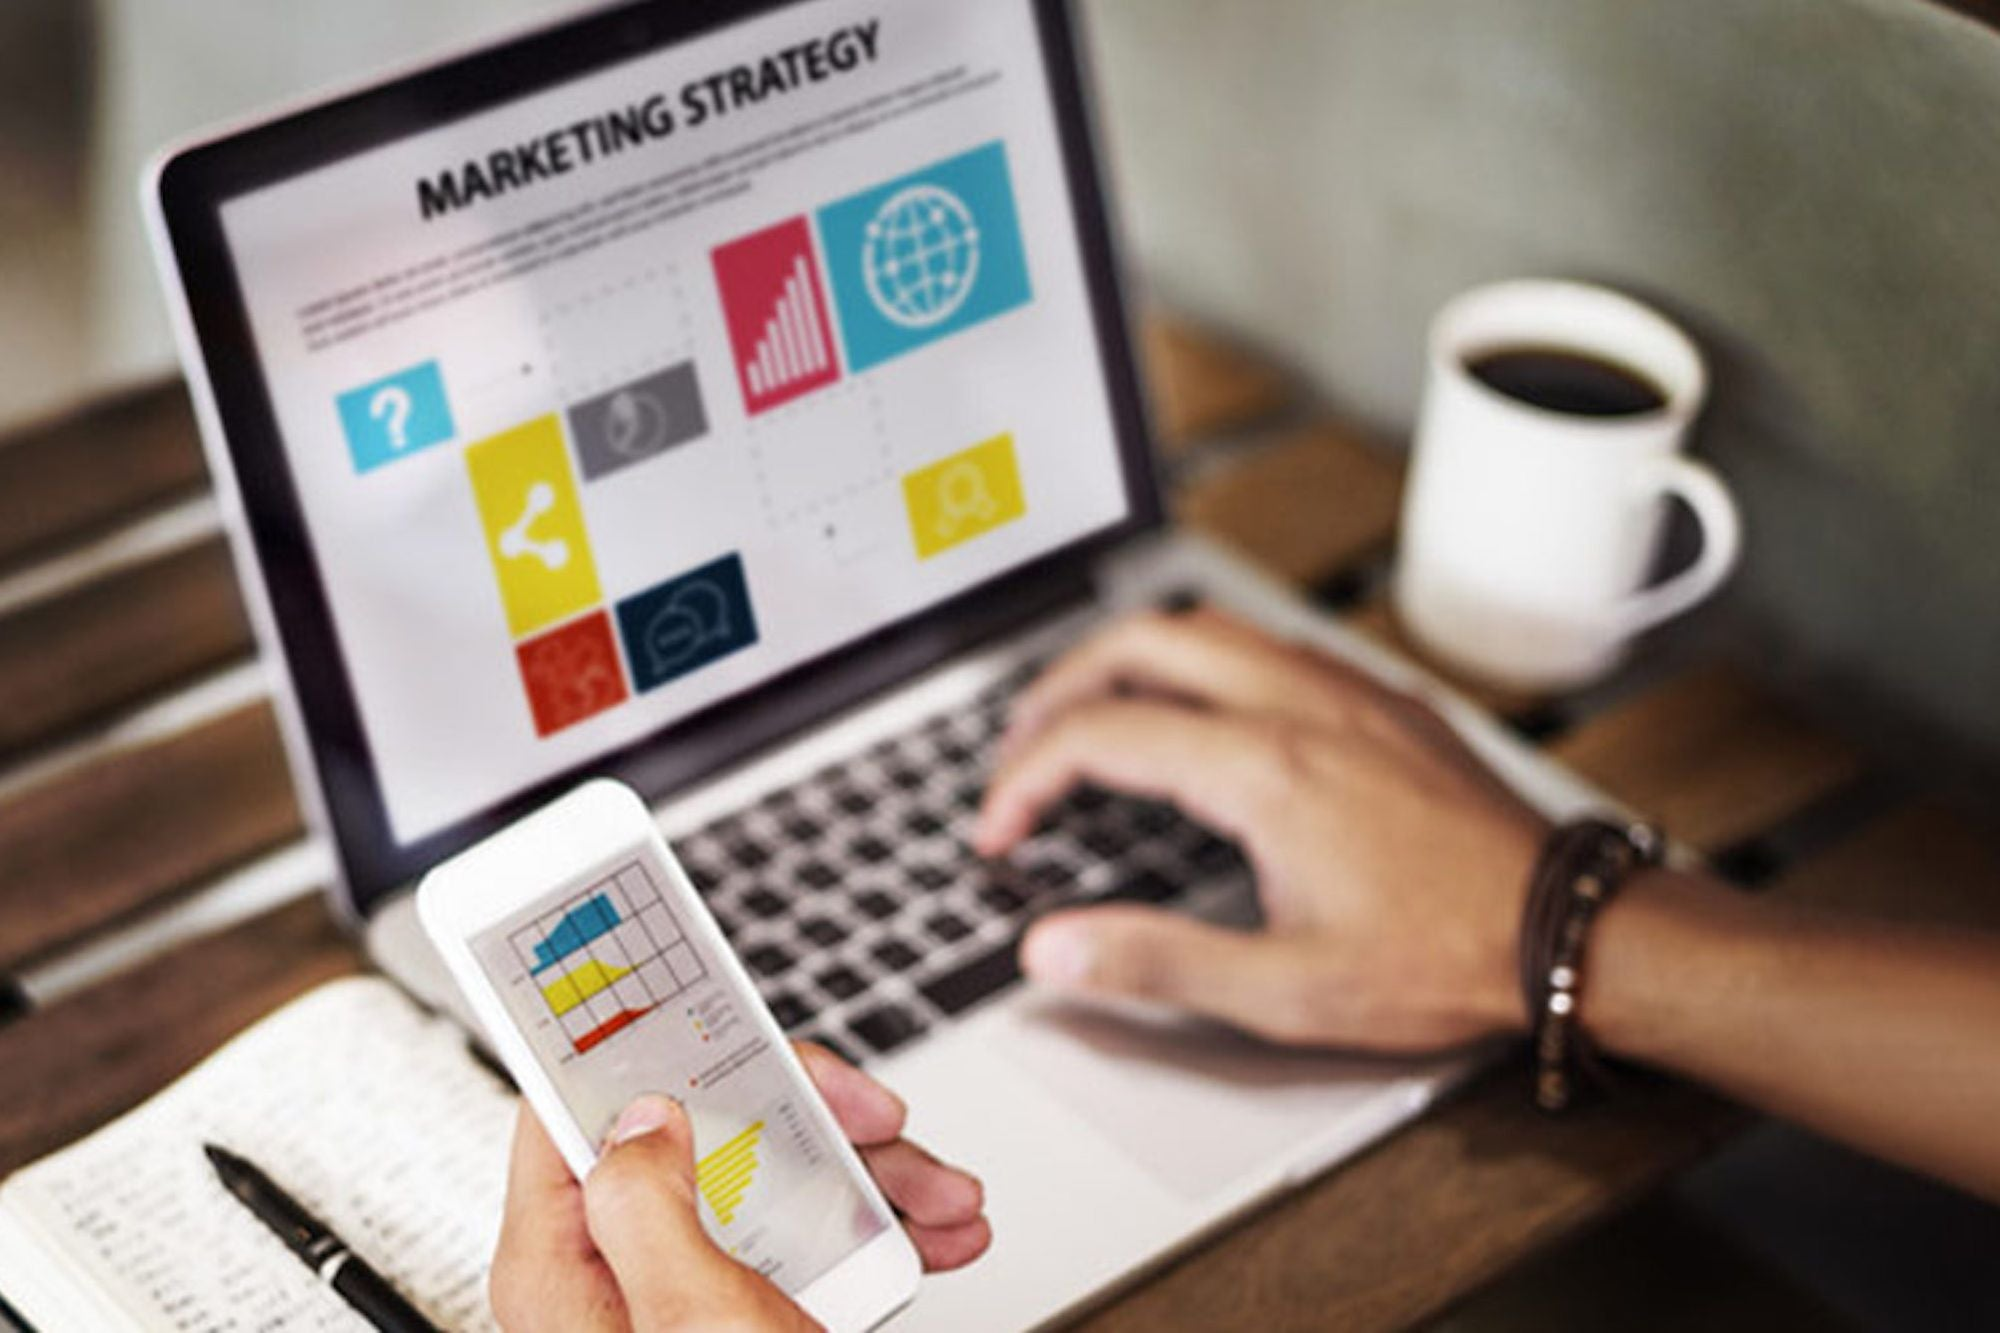 Acquire Traffic and Drive Revenue With This $11 Digital Marketing Course